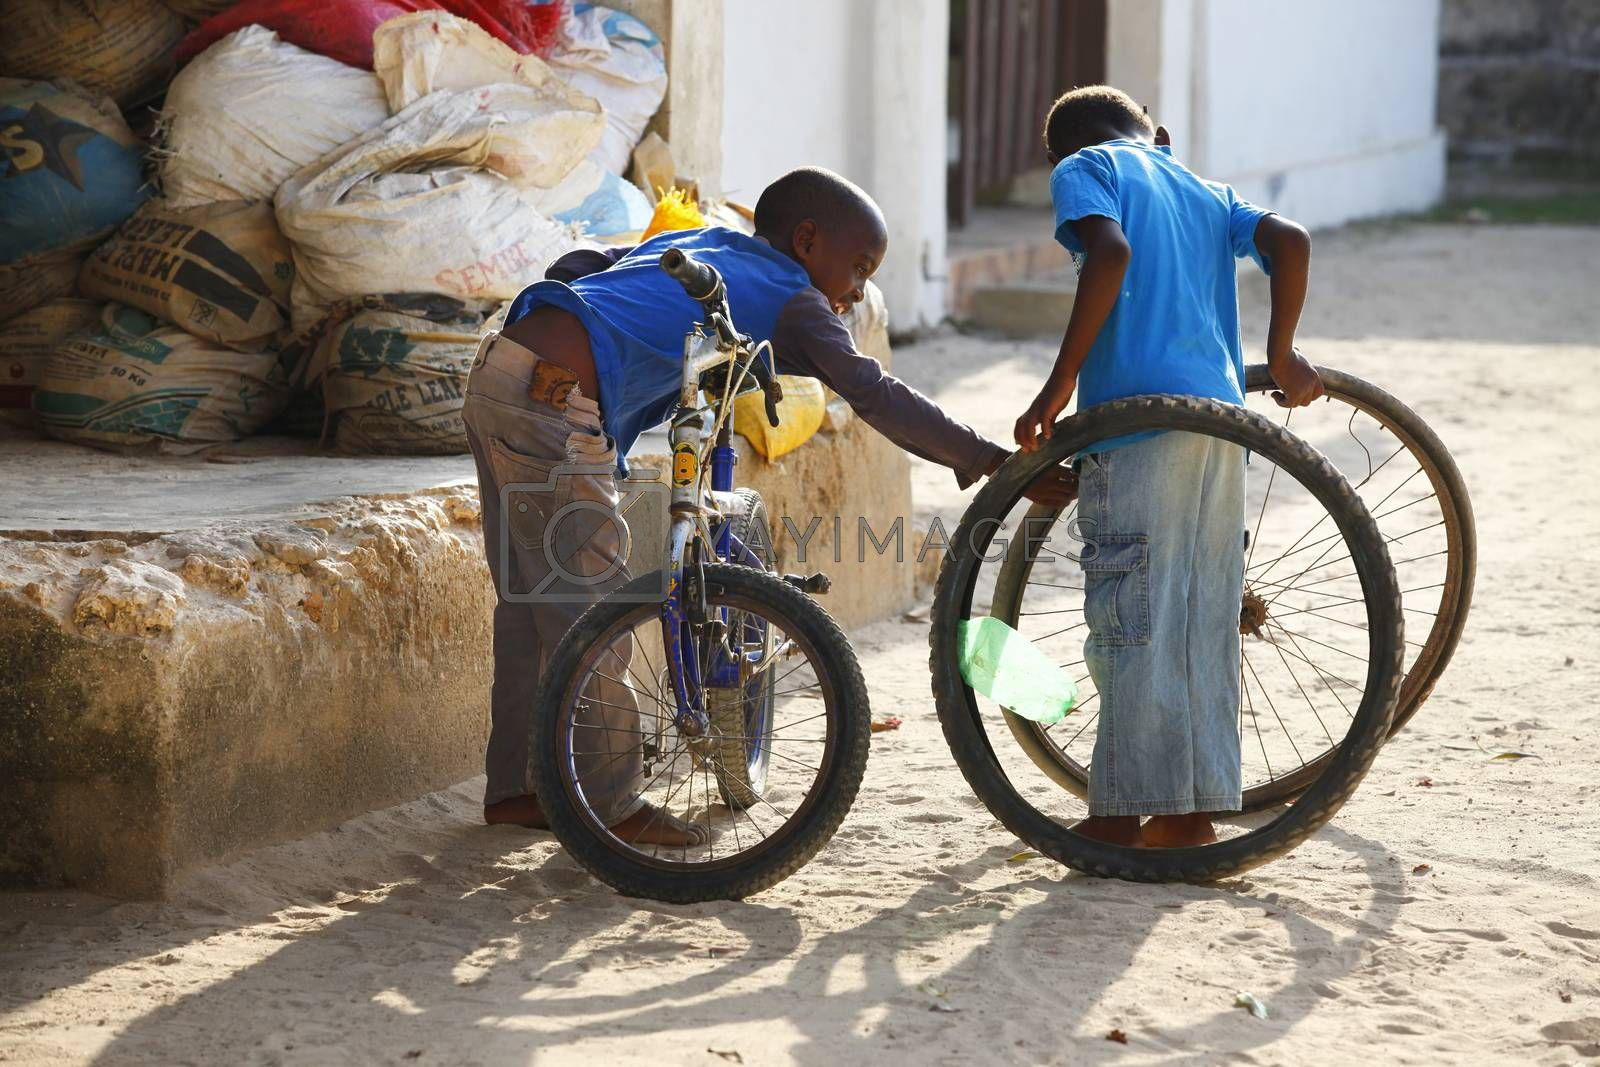 Zanzibar, Tanzania - January 8, 2016: two unknown African boy playing in the street in the village of Jambiani, Zanzibar. Tanzania